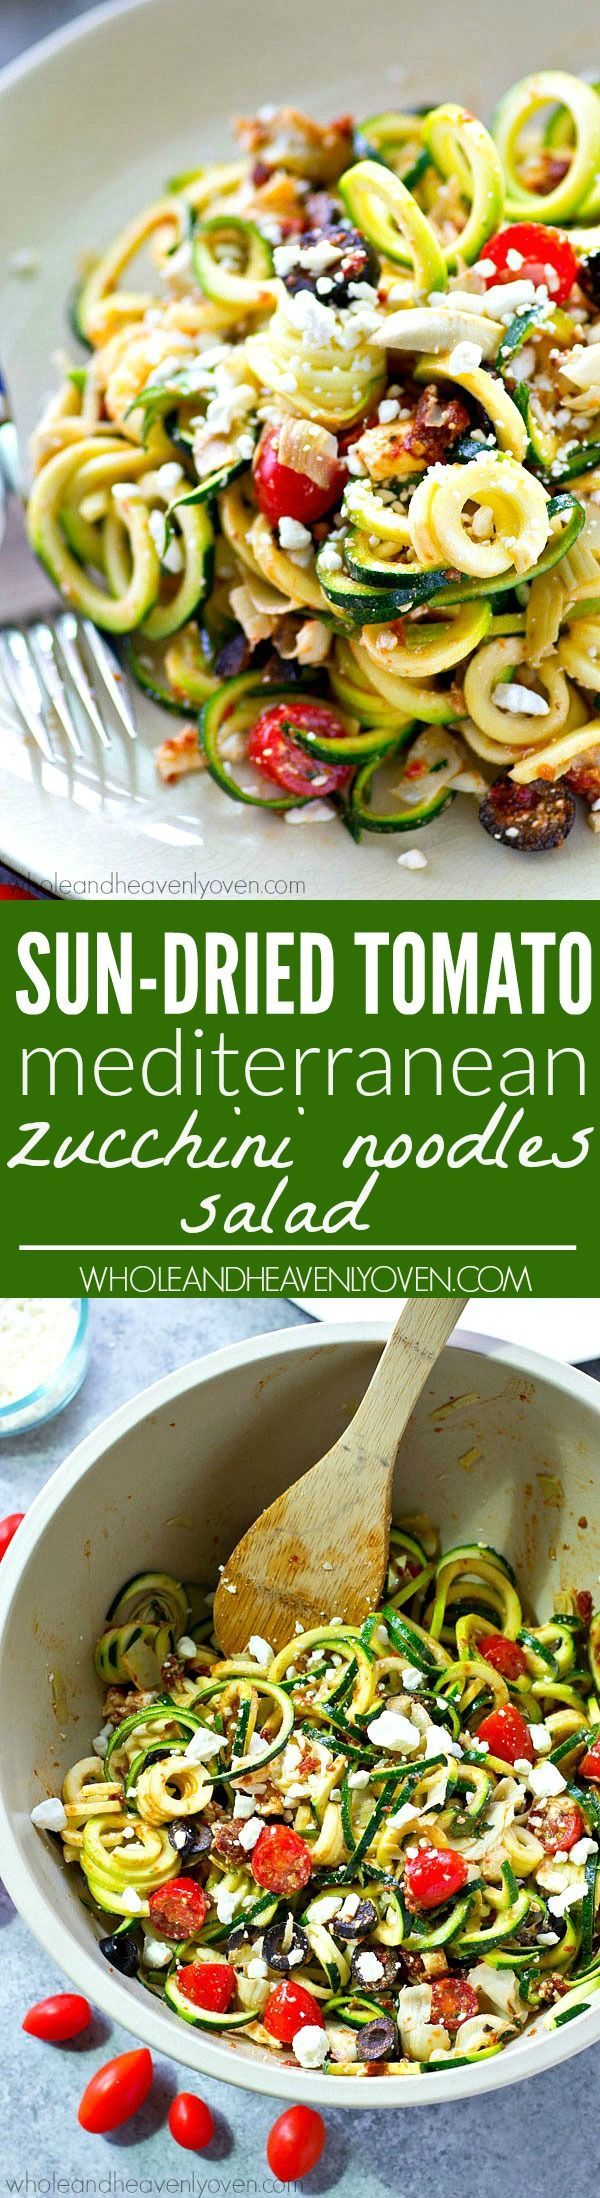 You won't be able to stop eating this popular zucchini noodles salad! Loaded with tons of fresh, healthy Mediterranean goodness and an unbelievable sun-dried tomato dressing.